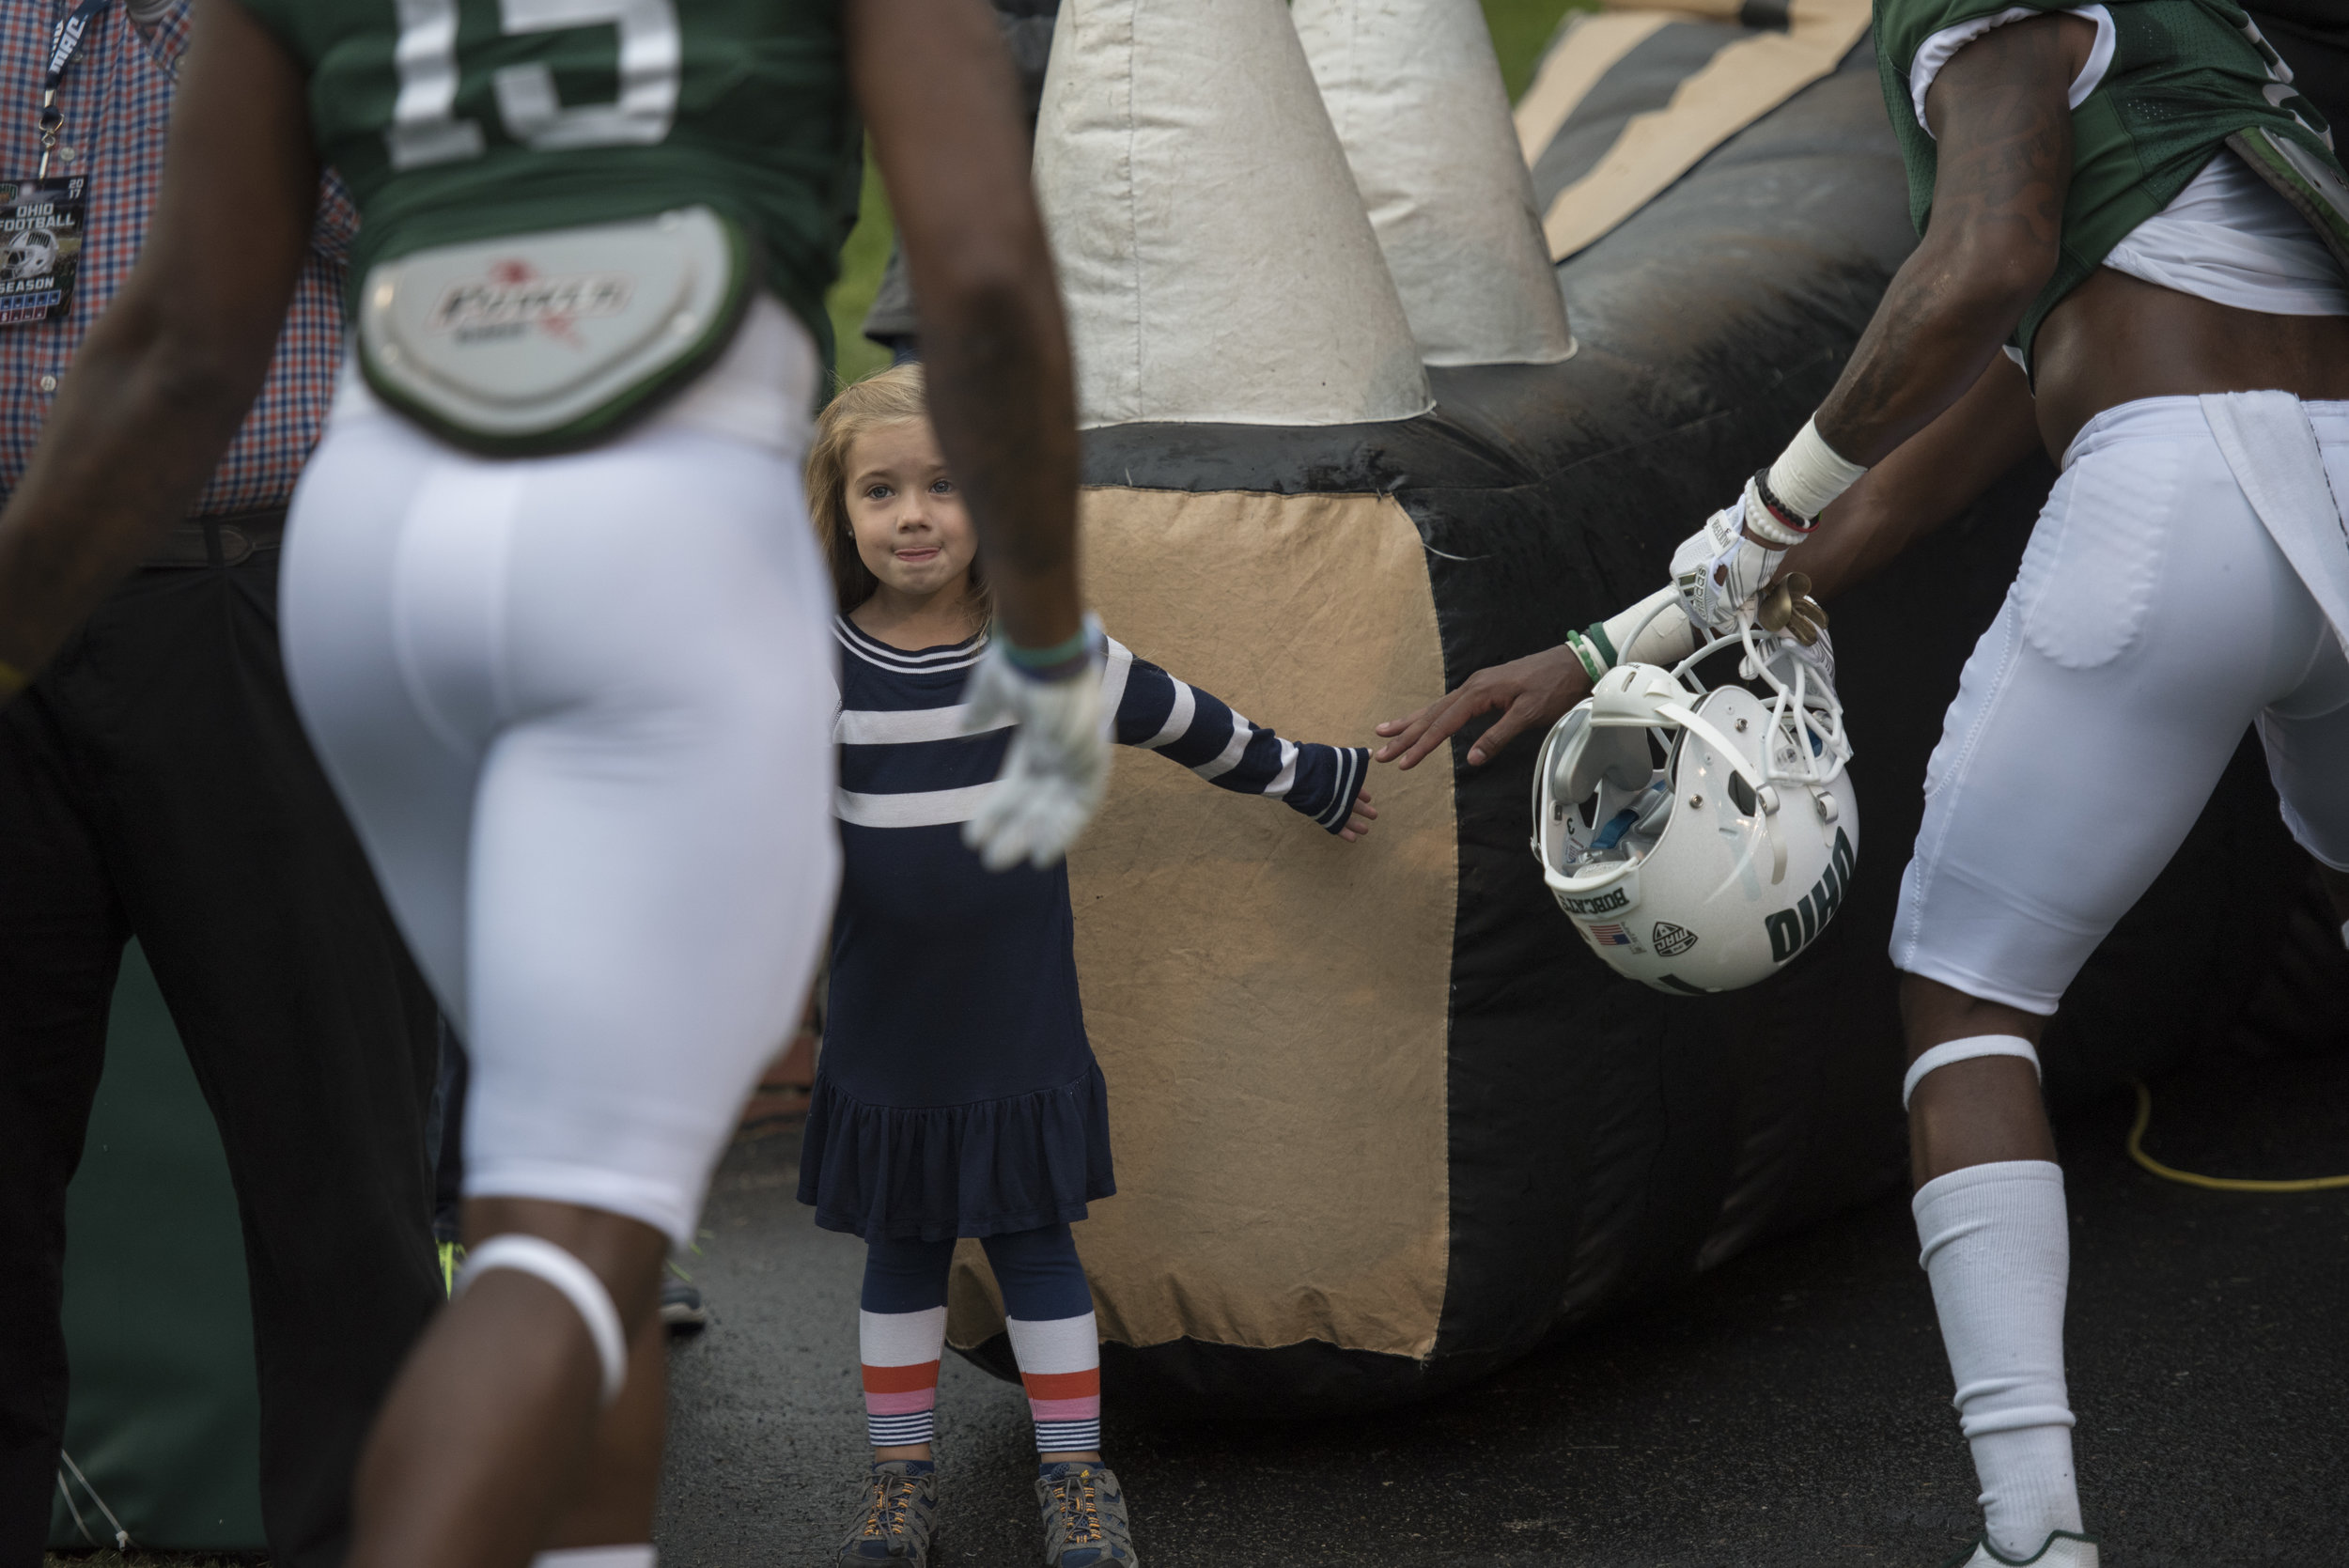 Penelope Carroll, age 4, high fives Ohio University football players as they go back into the tunnel on Sept. 2, 2017 during the home football game against Hampton University.